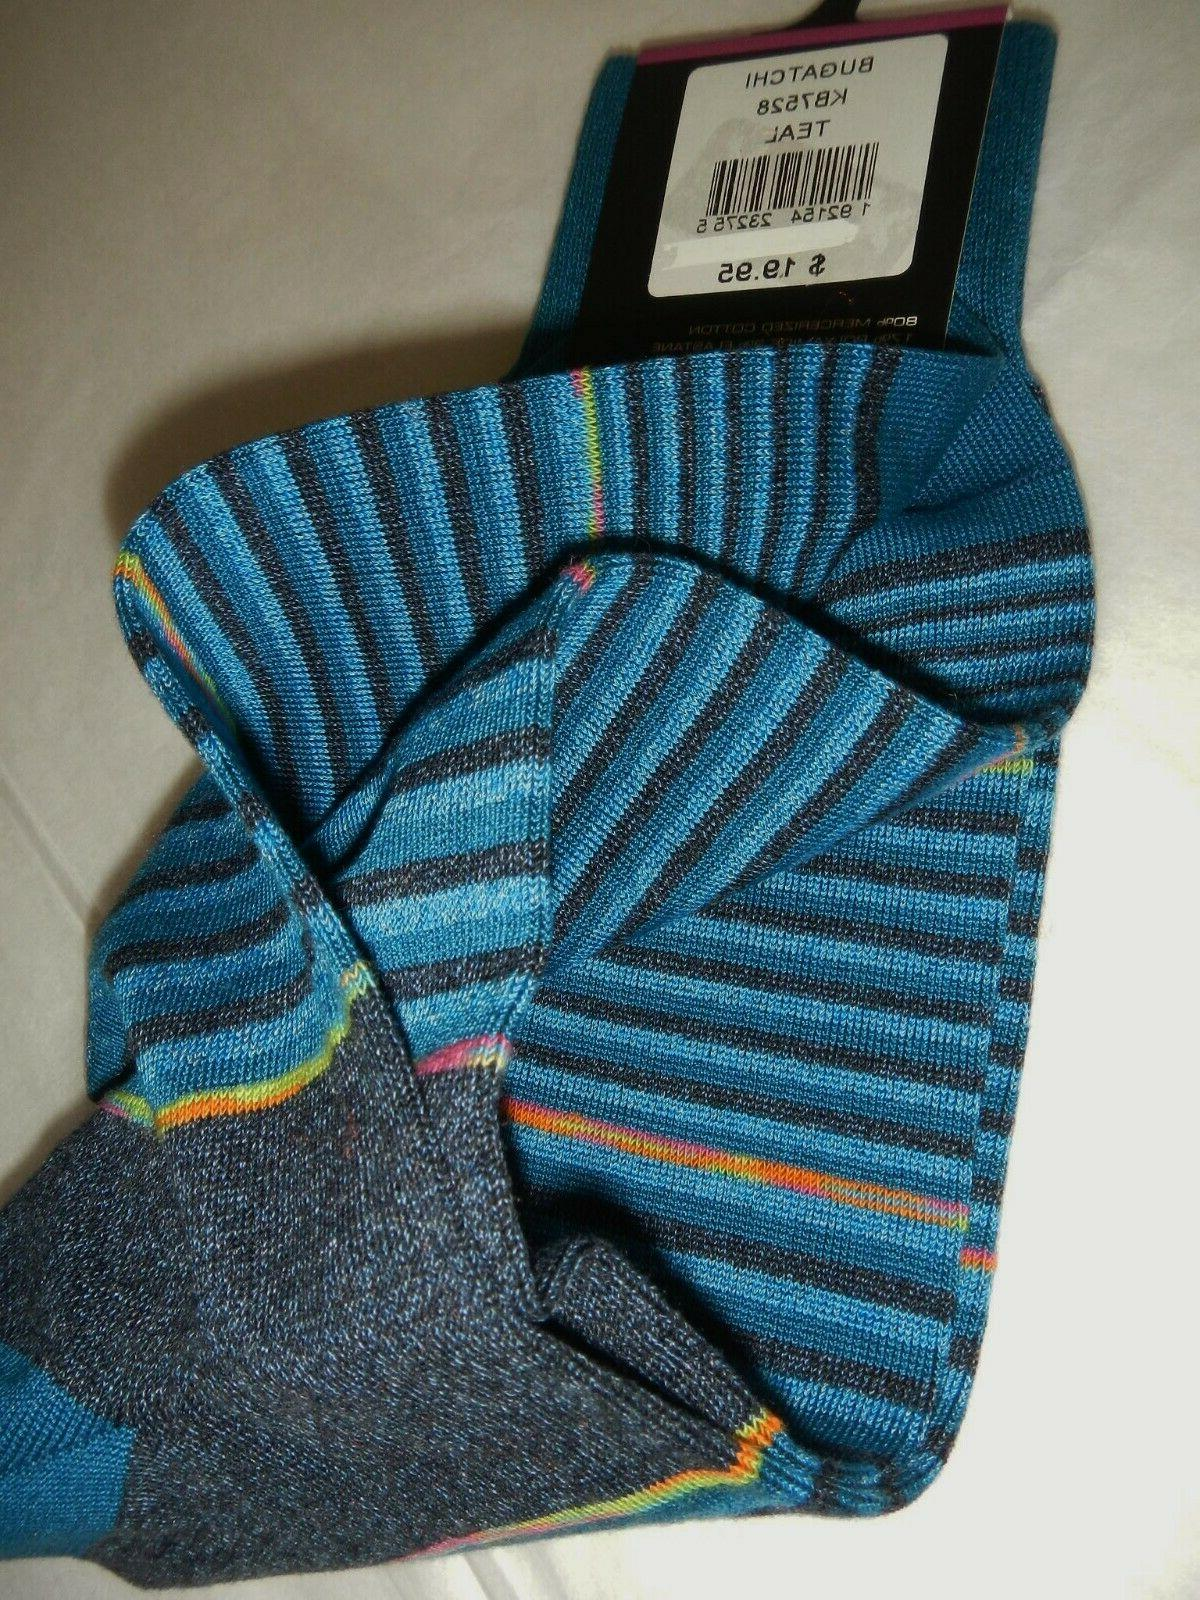 BUGATCHI DRESS SOCKS, TEAL/BLUE/MULTI STRIPED, ONE NWT